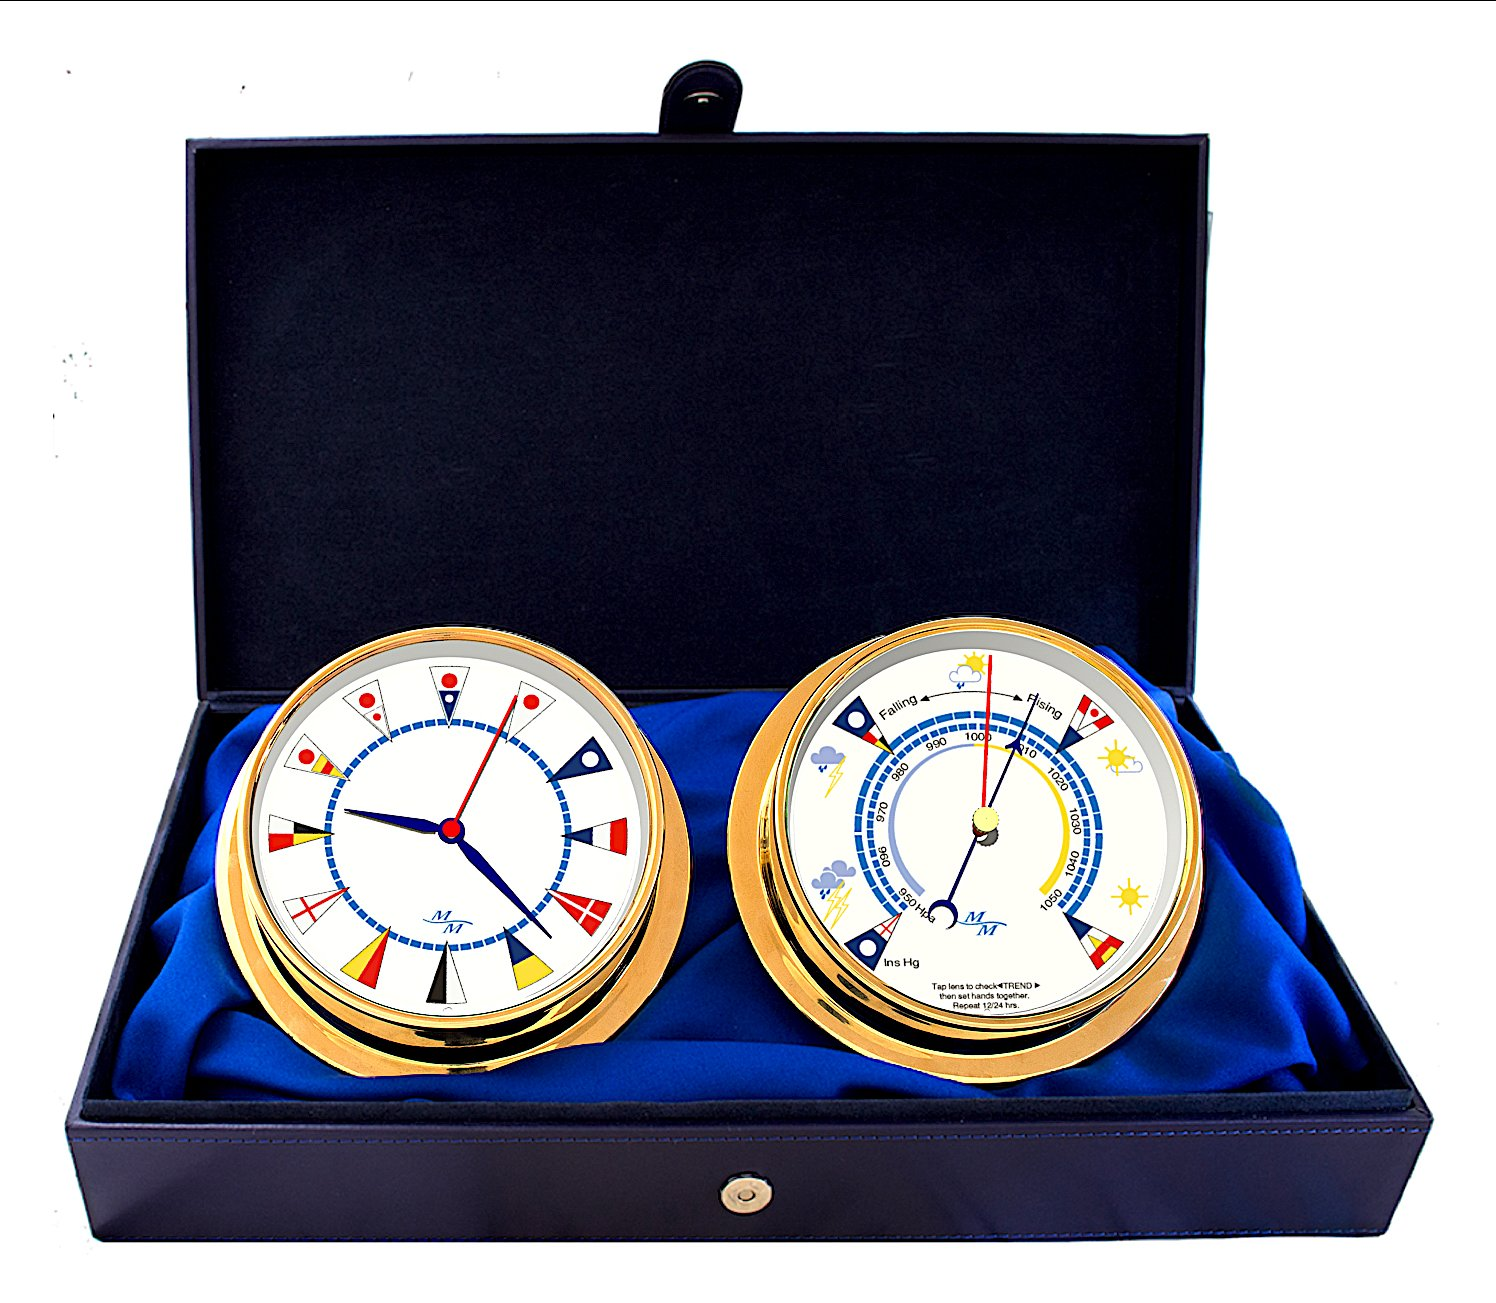 Master-Mariner American Voyager Collection, Nautical Cabin Gift Set, 5.75'' Diameter Clock and Barometer Instruments, Gold Finish, Ivory Signal Flag dial